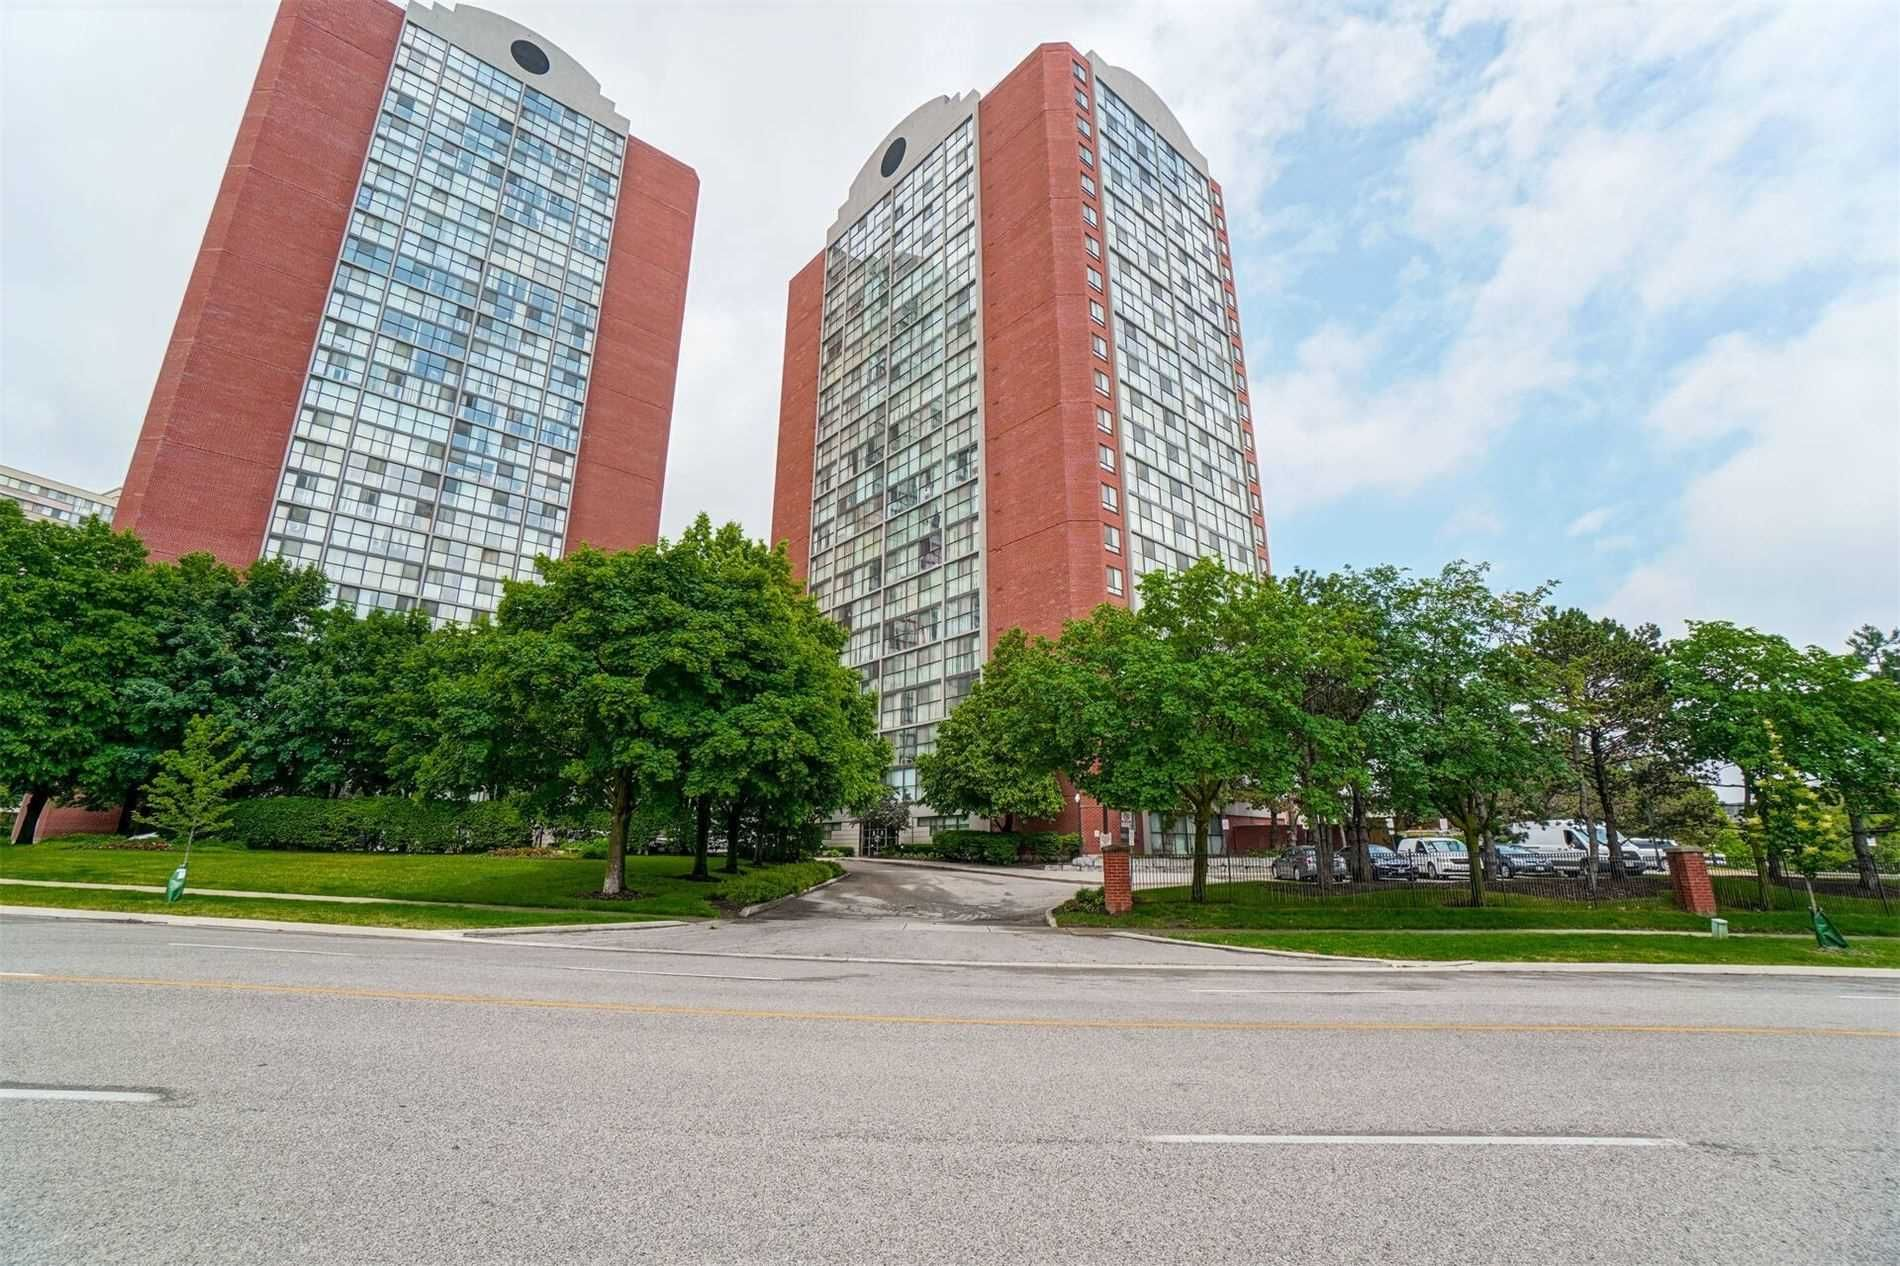 4185 Shipp Dr, unit 1111 for sale in Toronto - image #1